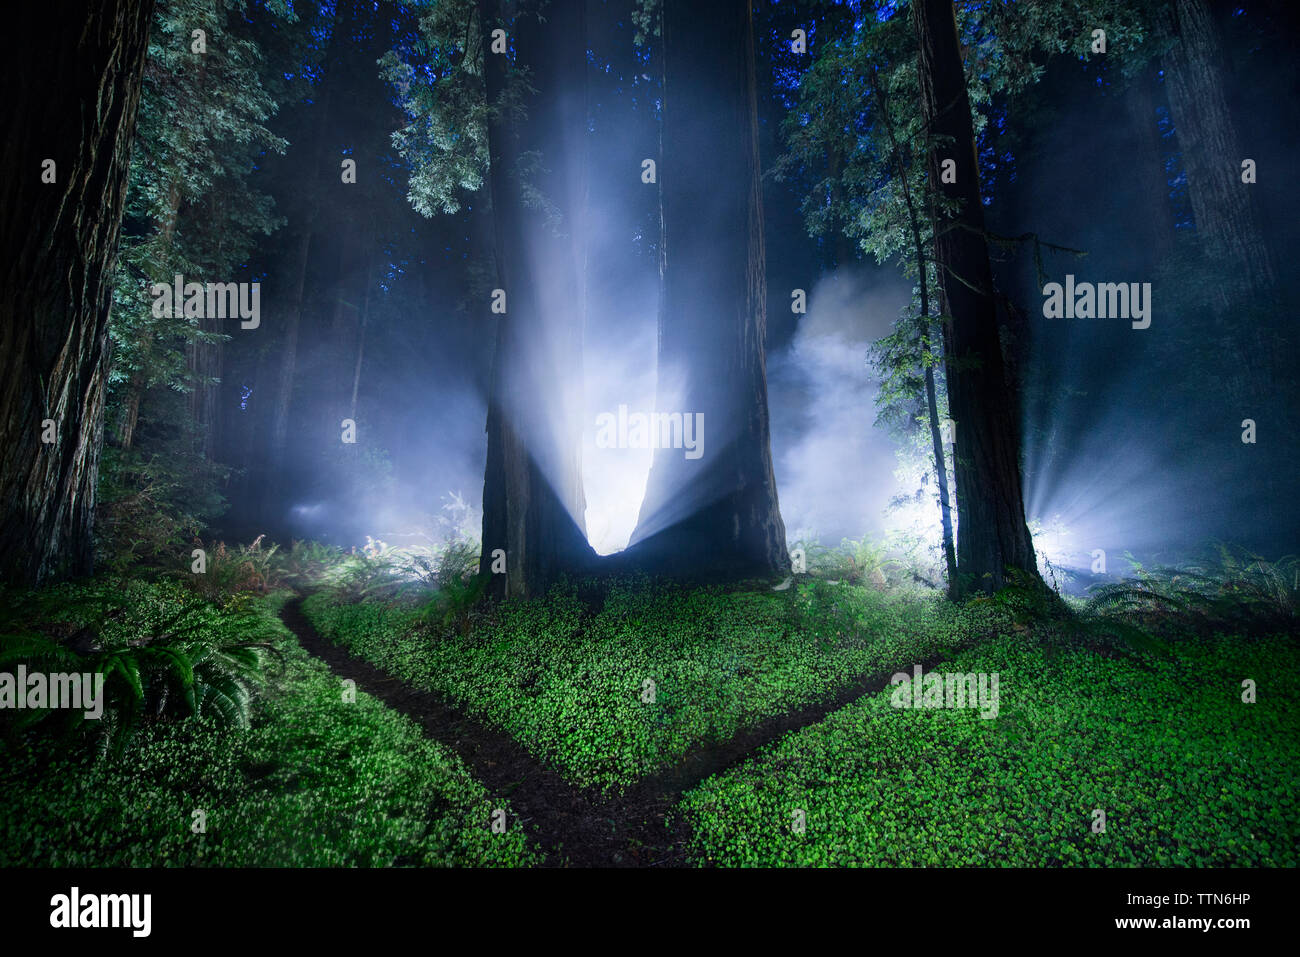 Tranquil view of forest at Jedediah Smith Redwoods State Park during night - Stock Image